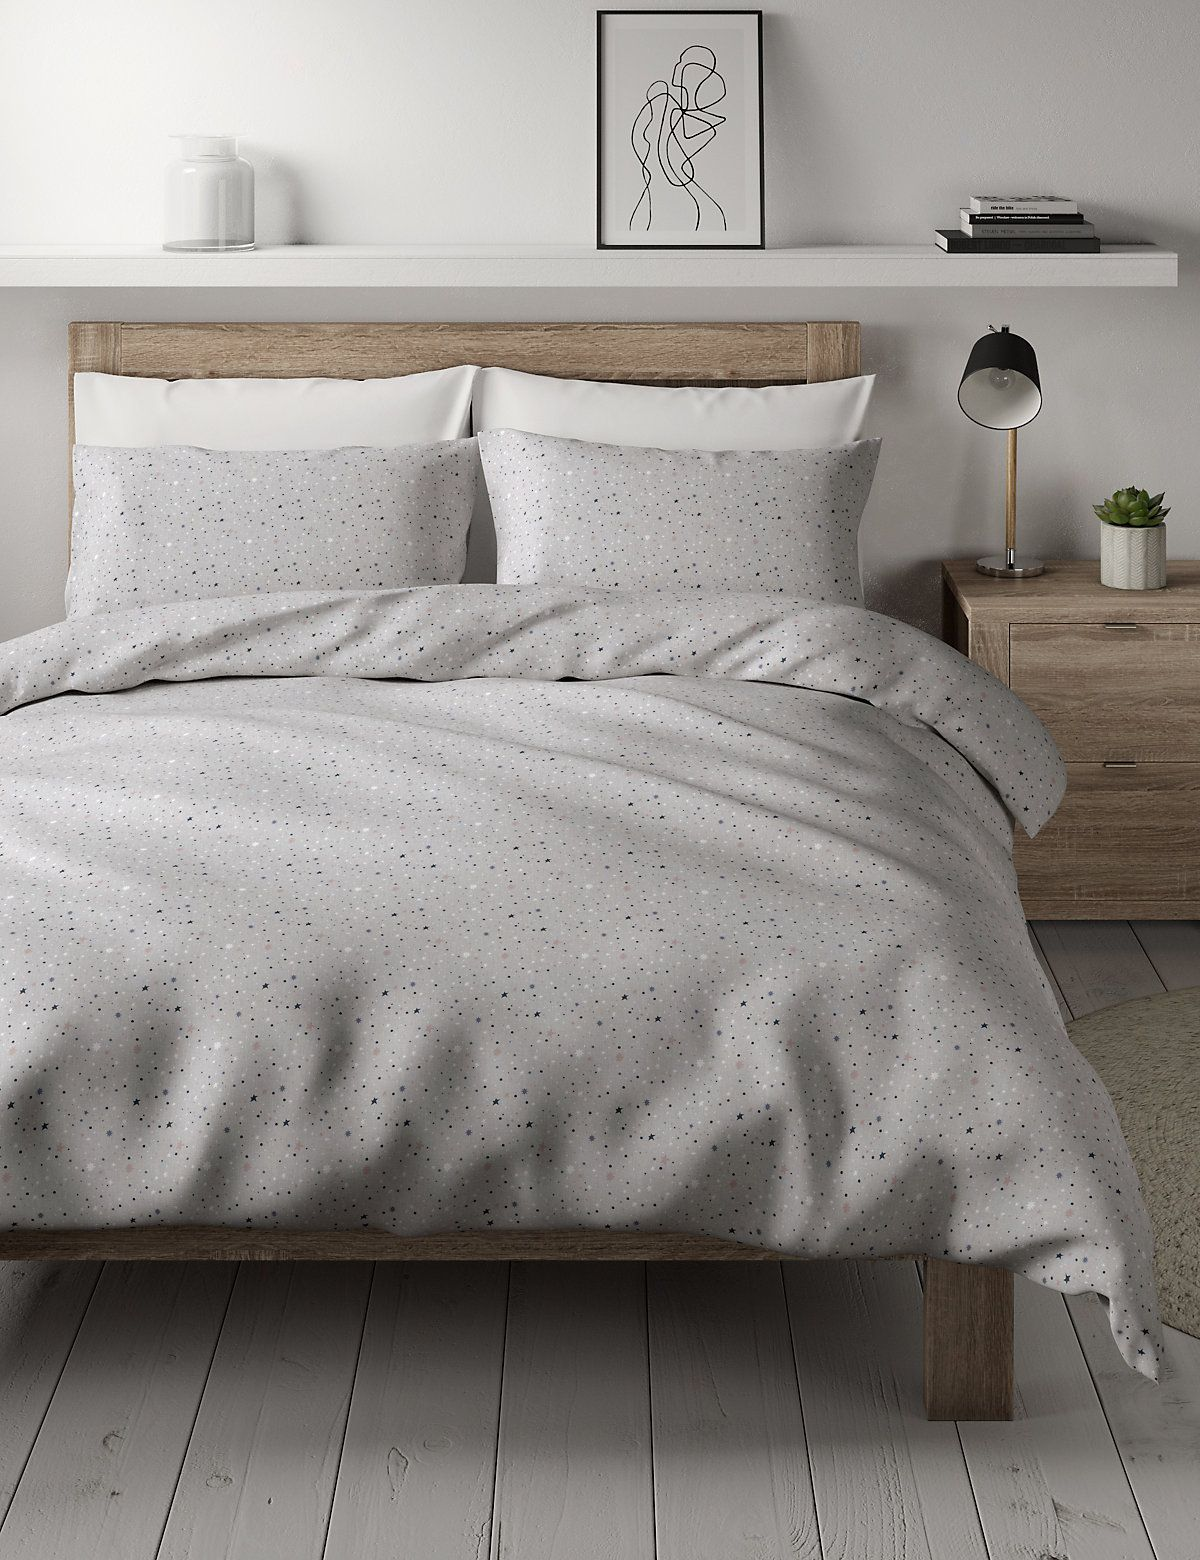 Bedding companies reveal latest product